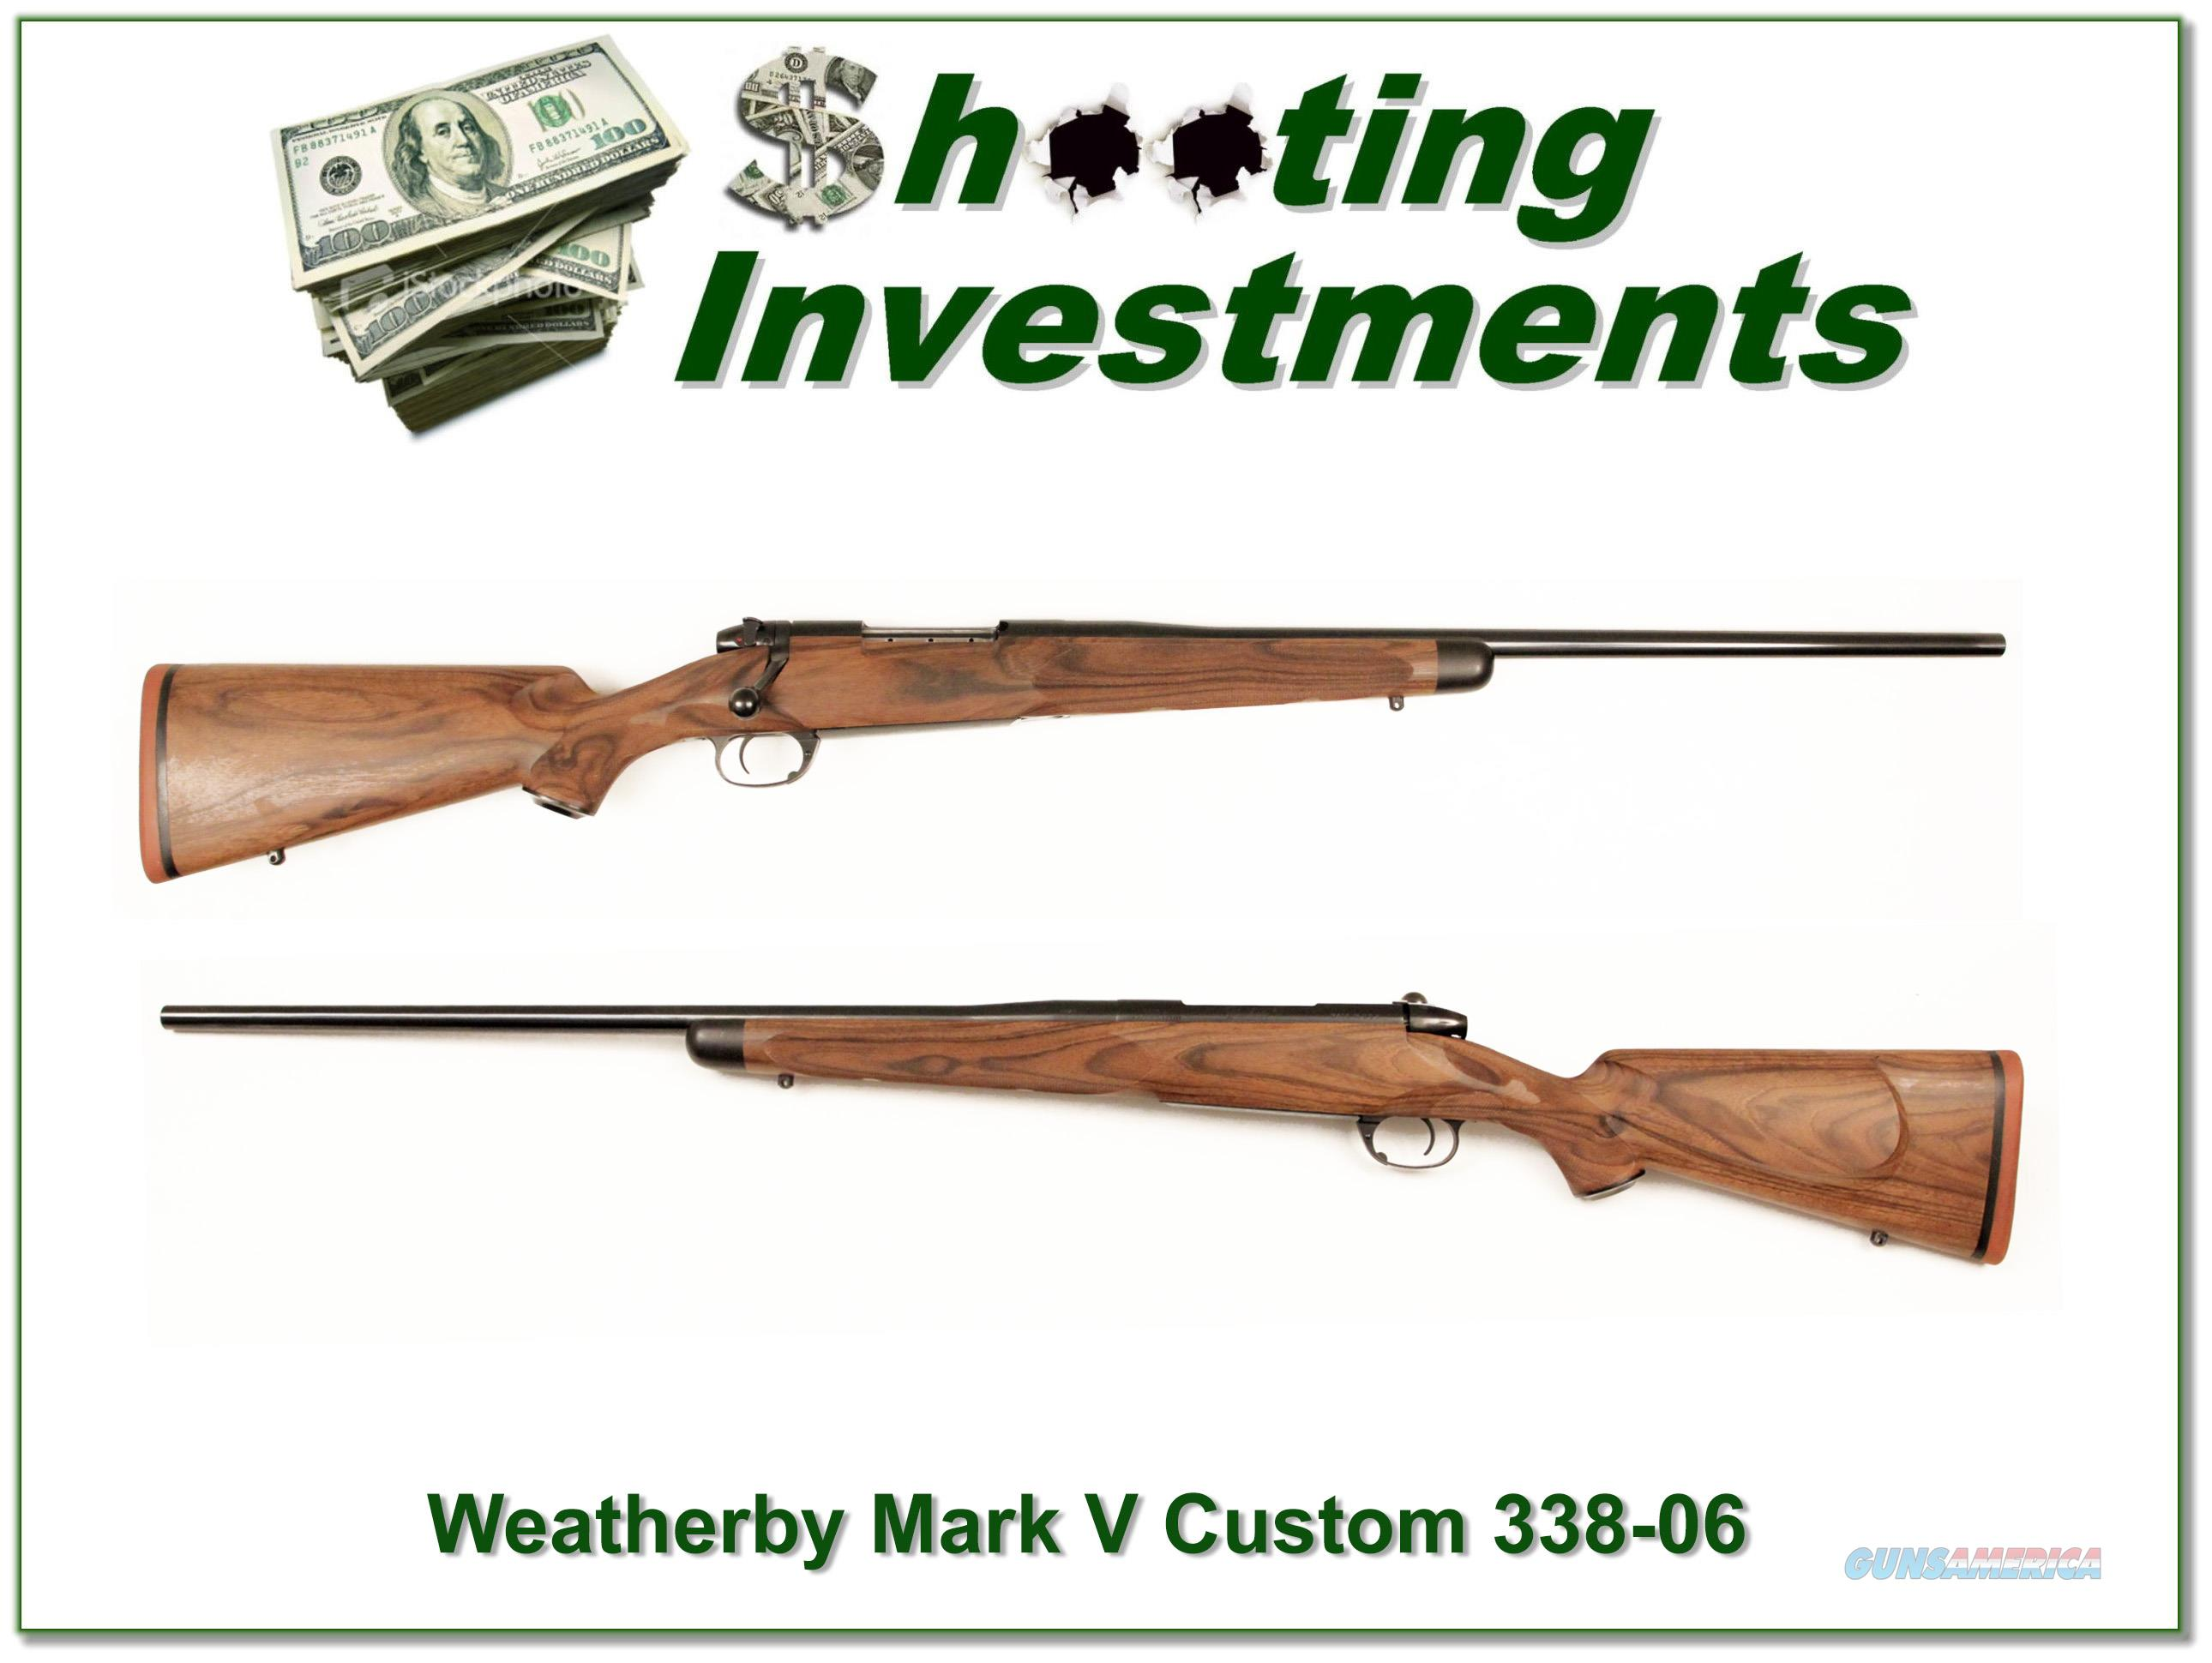 Weatherby Mark V Custom 338-06 Beautiful Stock!  Guns > Rifles > Weatherby Rifles > Sporting